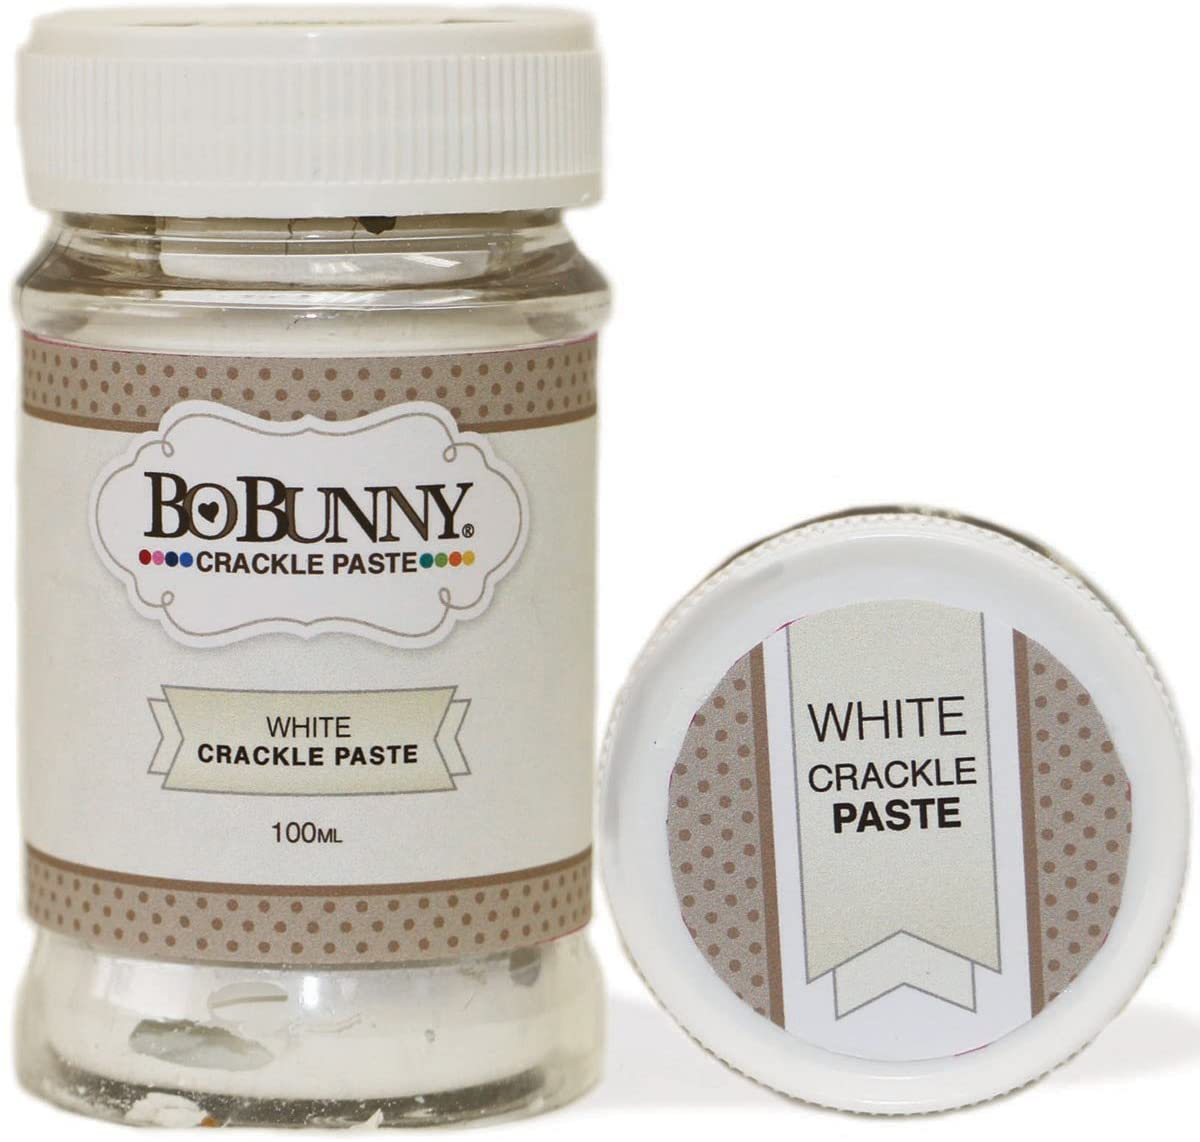 White Crackle Paste